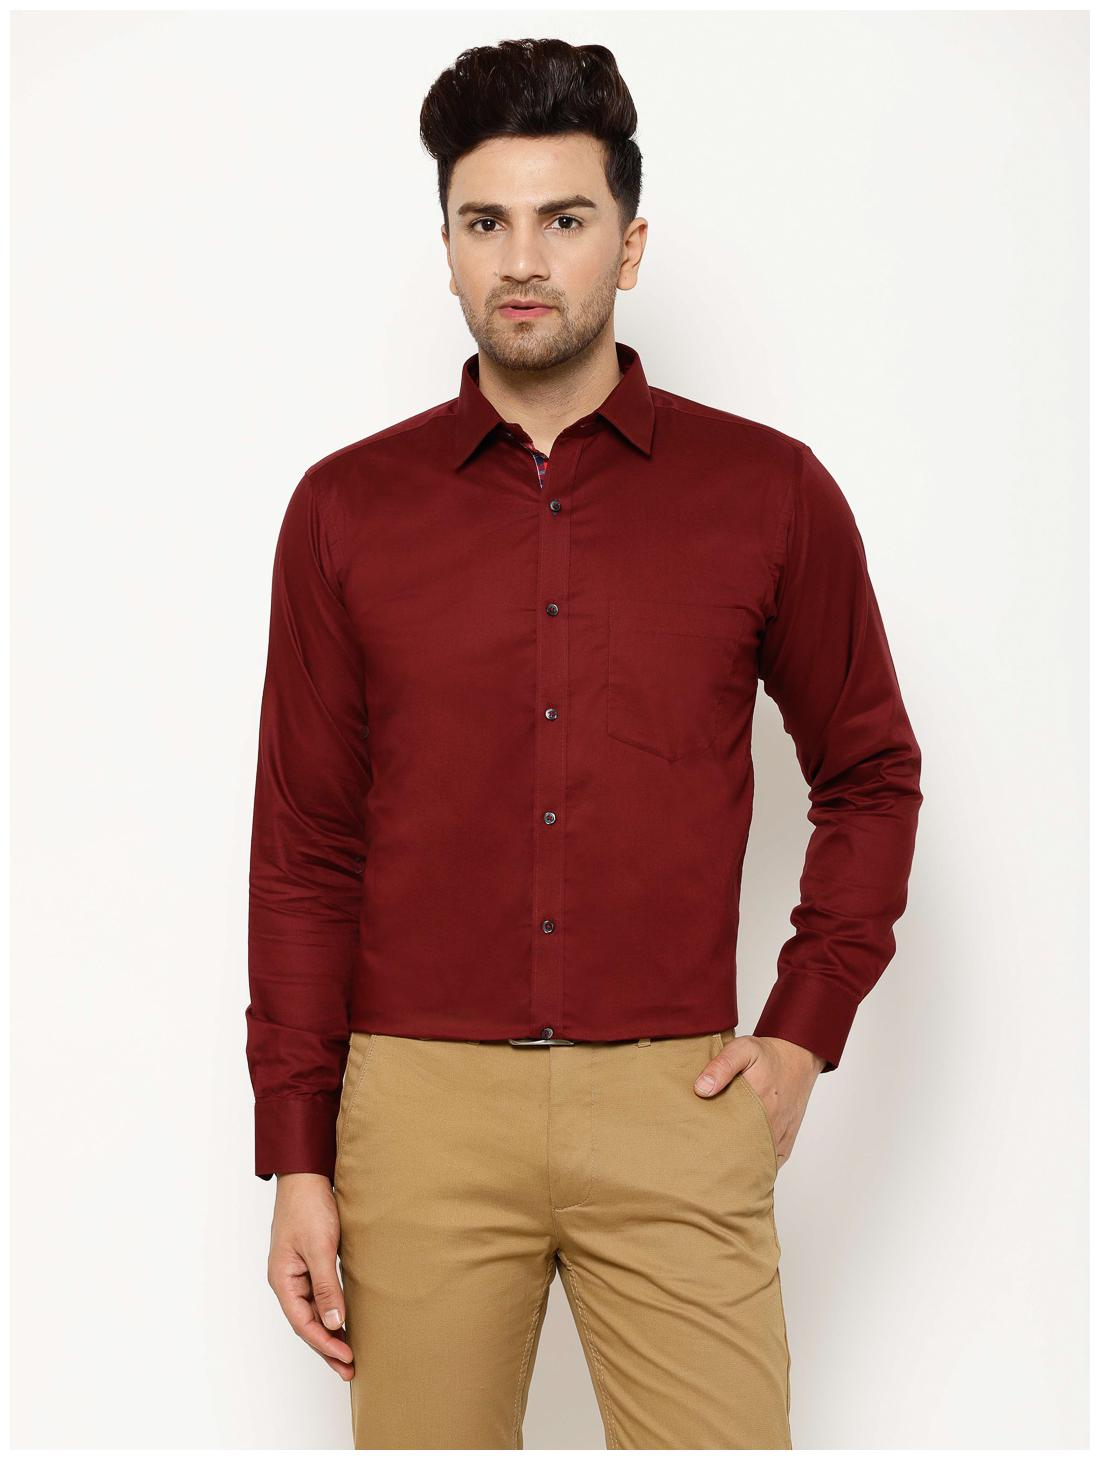 https://assetscdn1.paytm.com/images/catalog/product/A/AP/APPEPPE-COTTON-EPPE1157826FA87AFE3/1611904164058_0..jpg